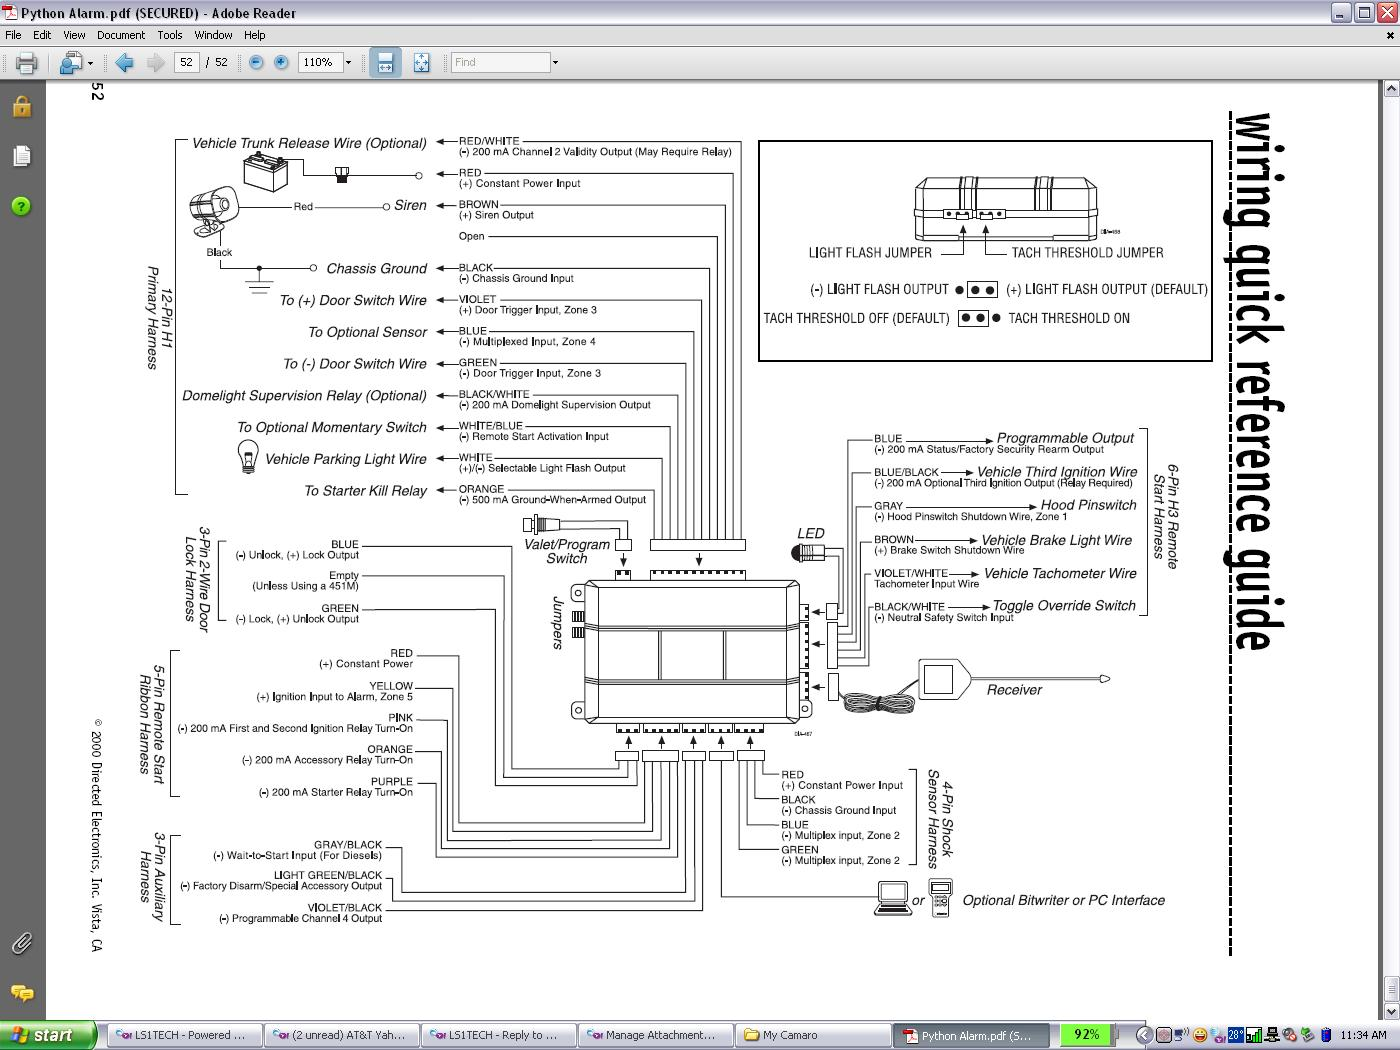 Viper 5901 Wiring Diagram moreover Viper Auto Start Wiring Diagram further Water Heater Install Diagram additionally Viper 3303 Wiring Diagram moreover Jazzy Elite Hd Wiring Diagram. on viper 5902 wiring diagram